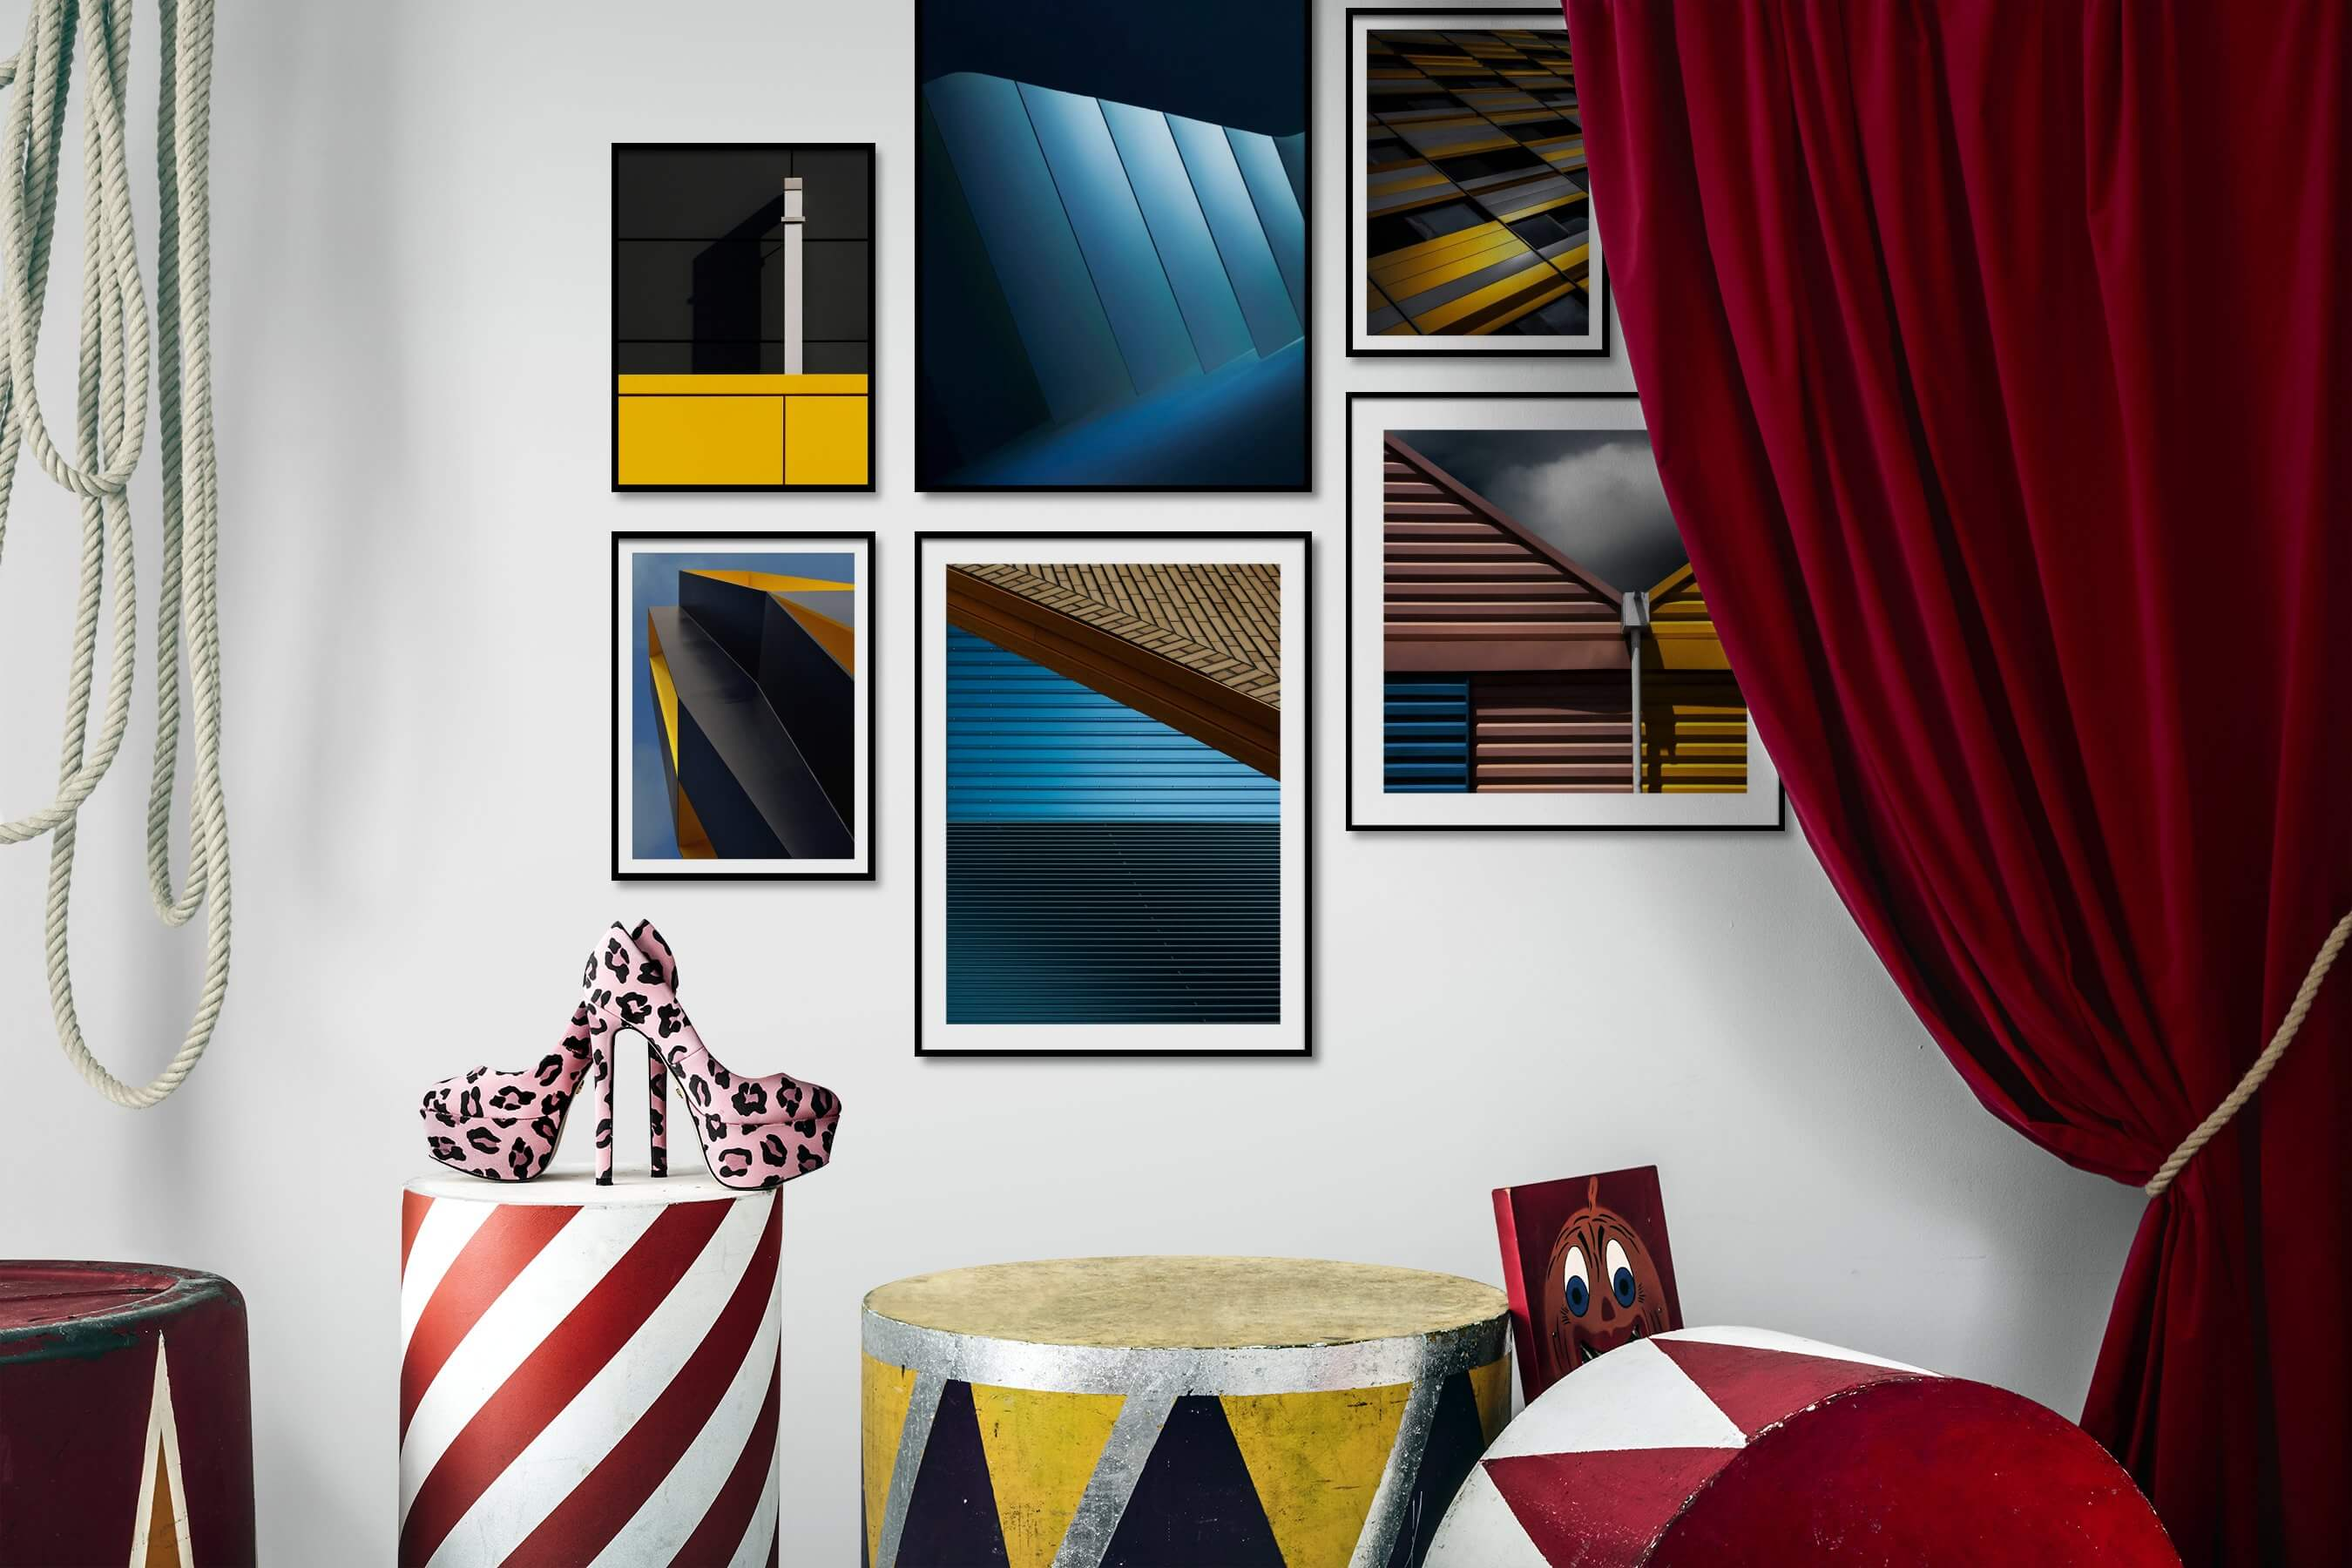 Gallery wall idea with six framed pictures arranged on a wall depicting For the Minimalist, For the Moderate, and For the Maximalist